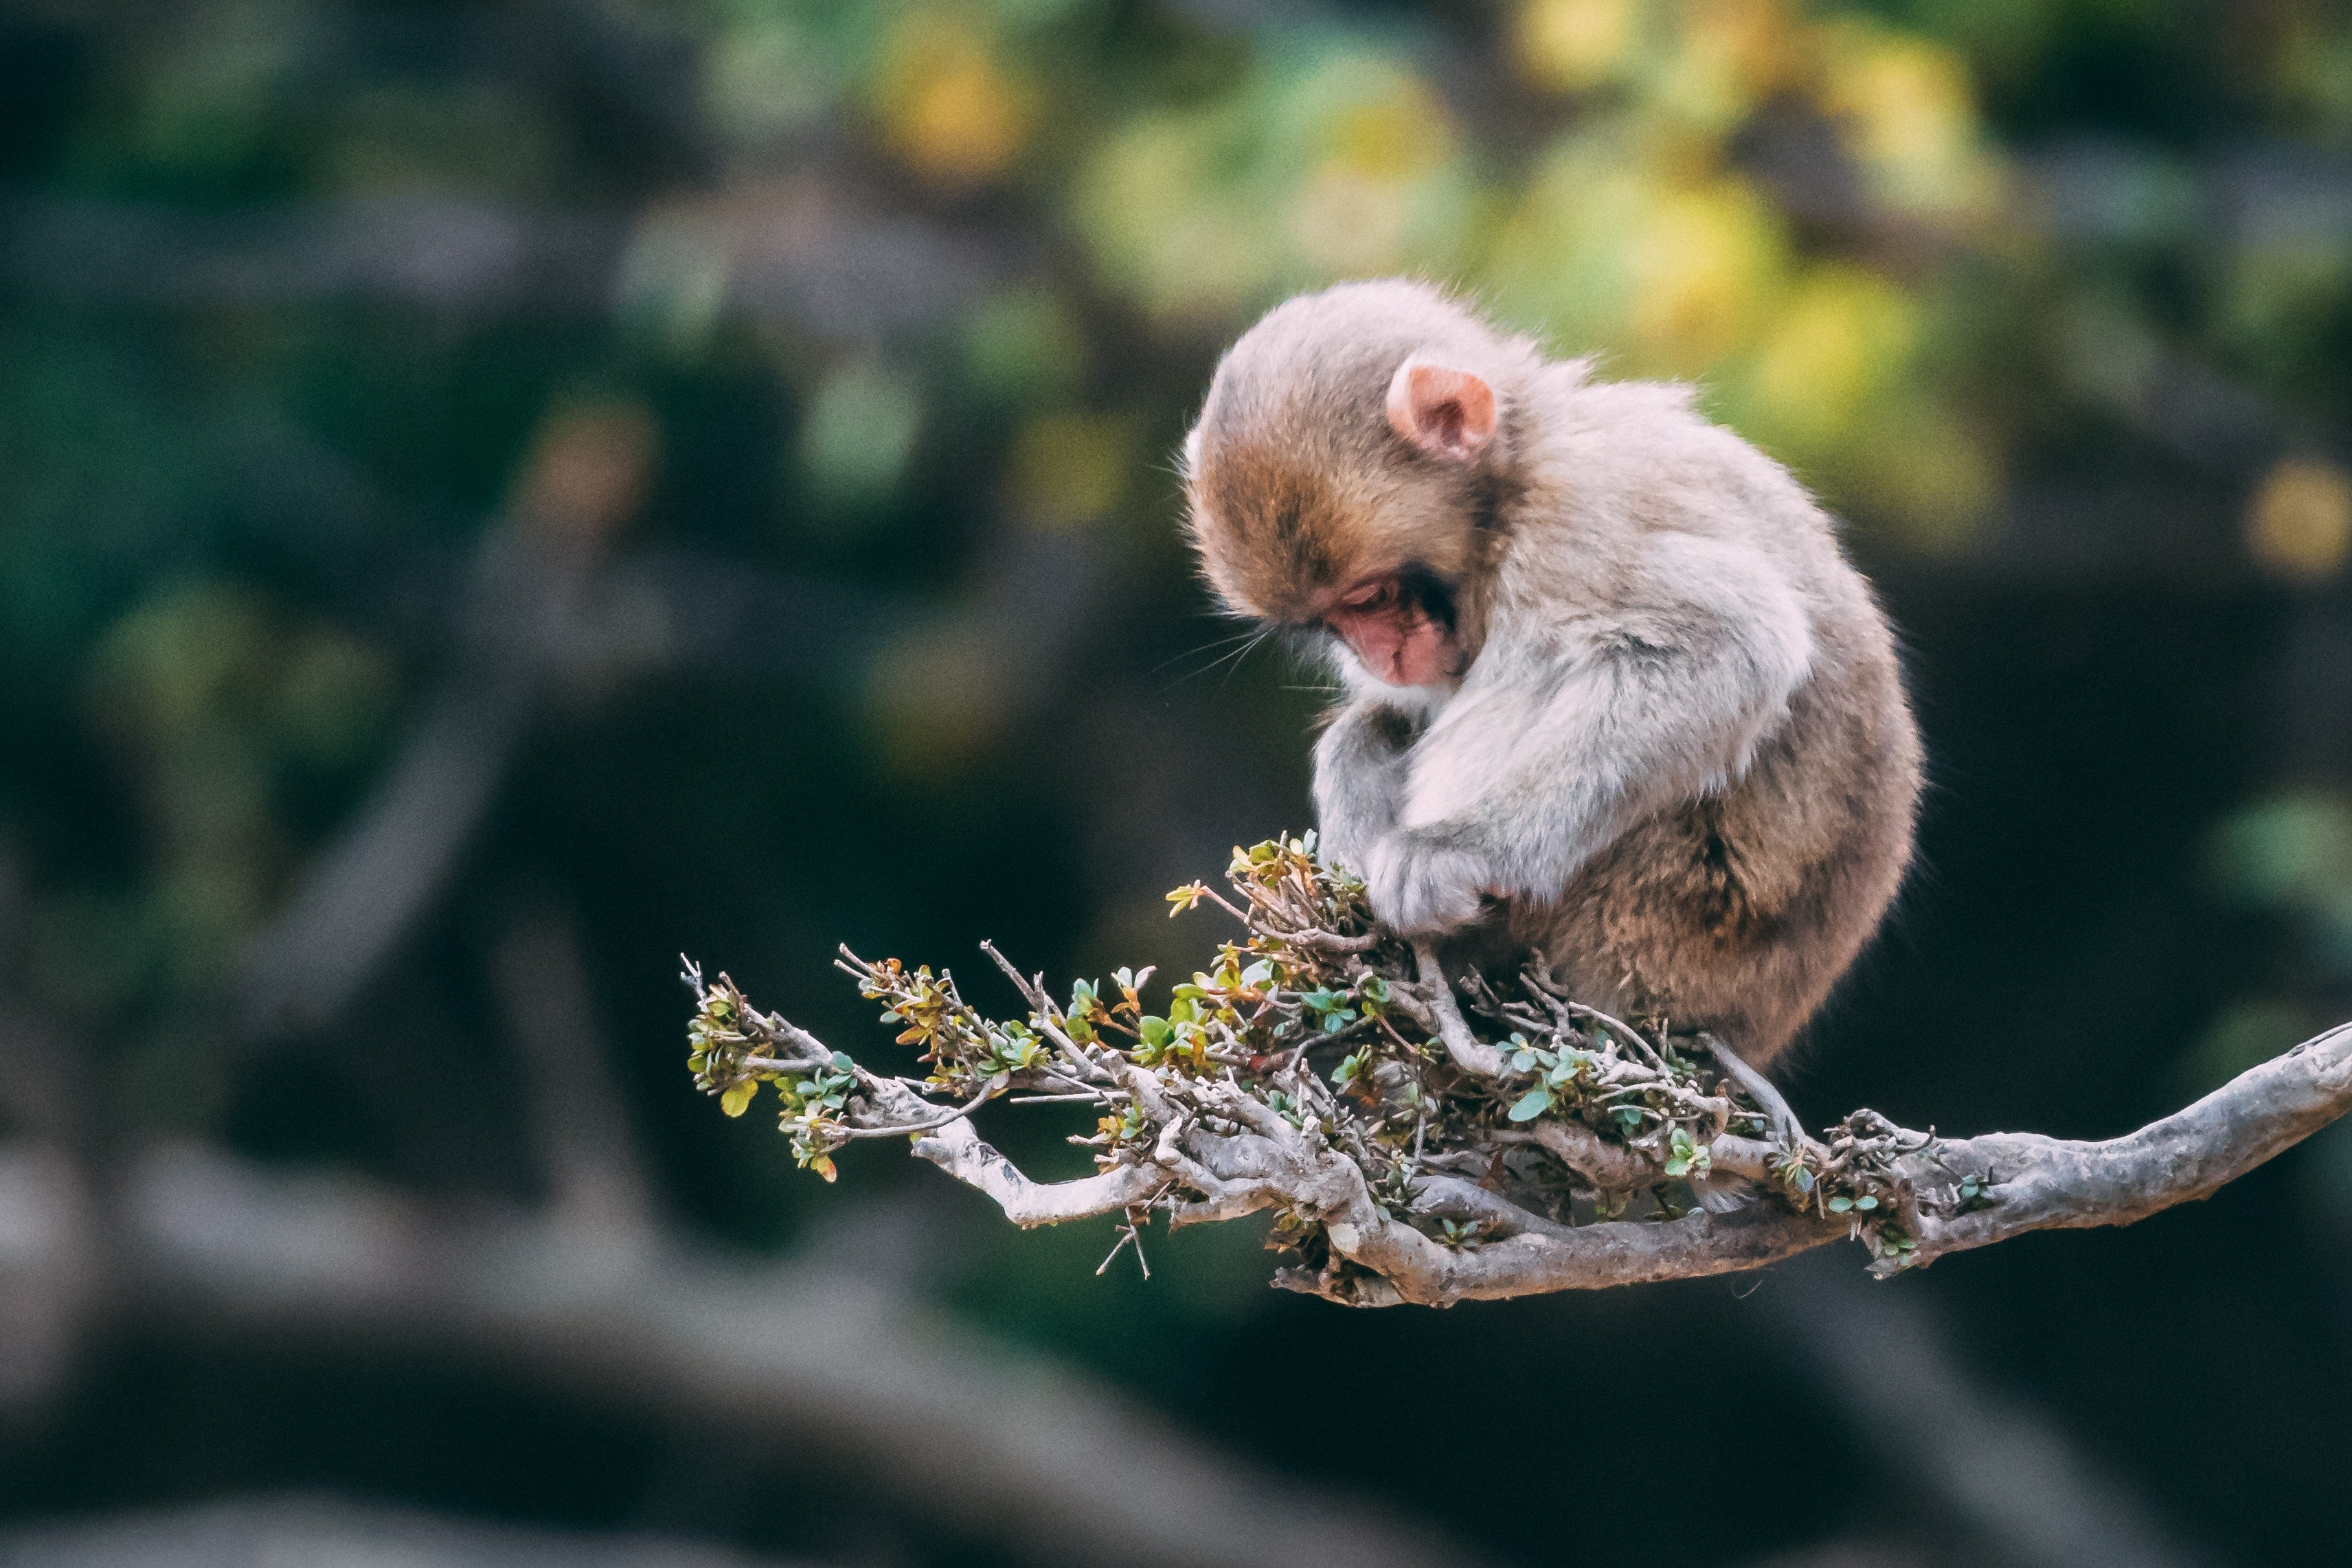 9 tips to help save wildlife